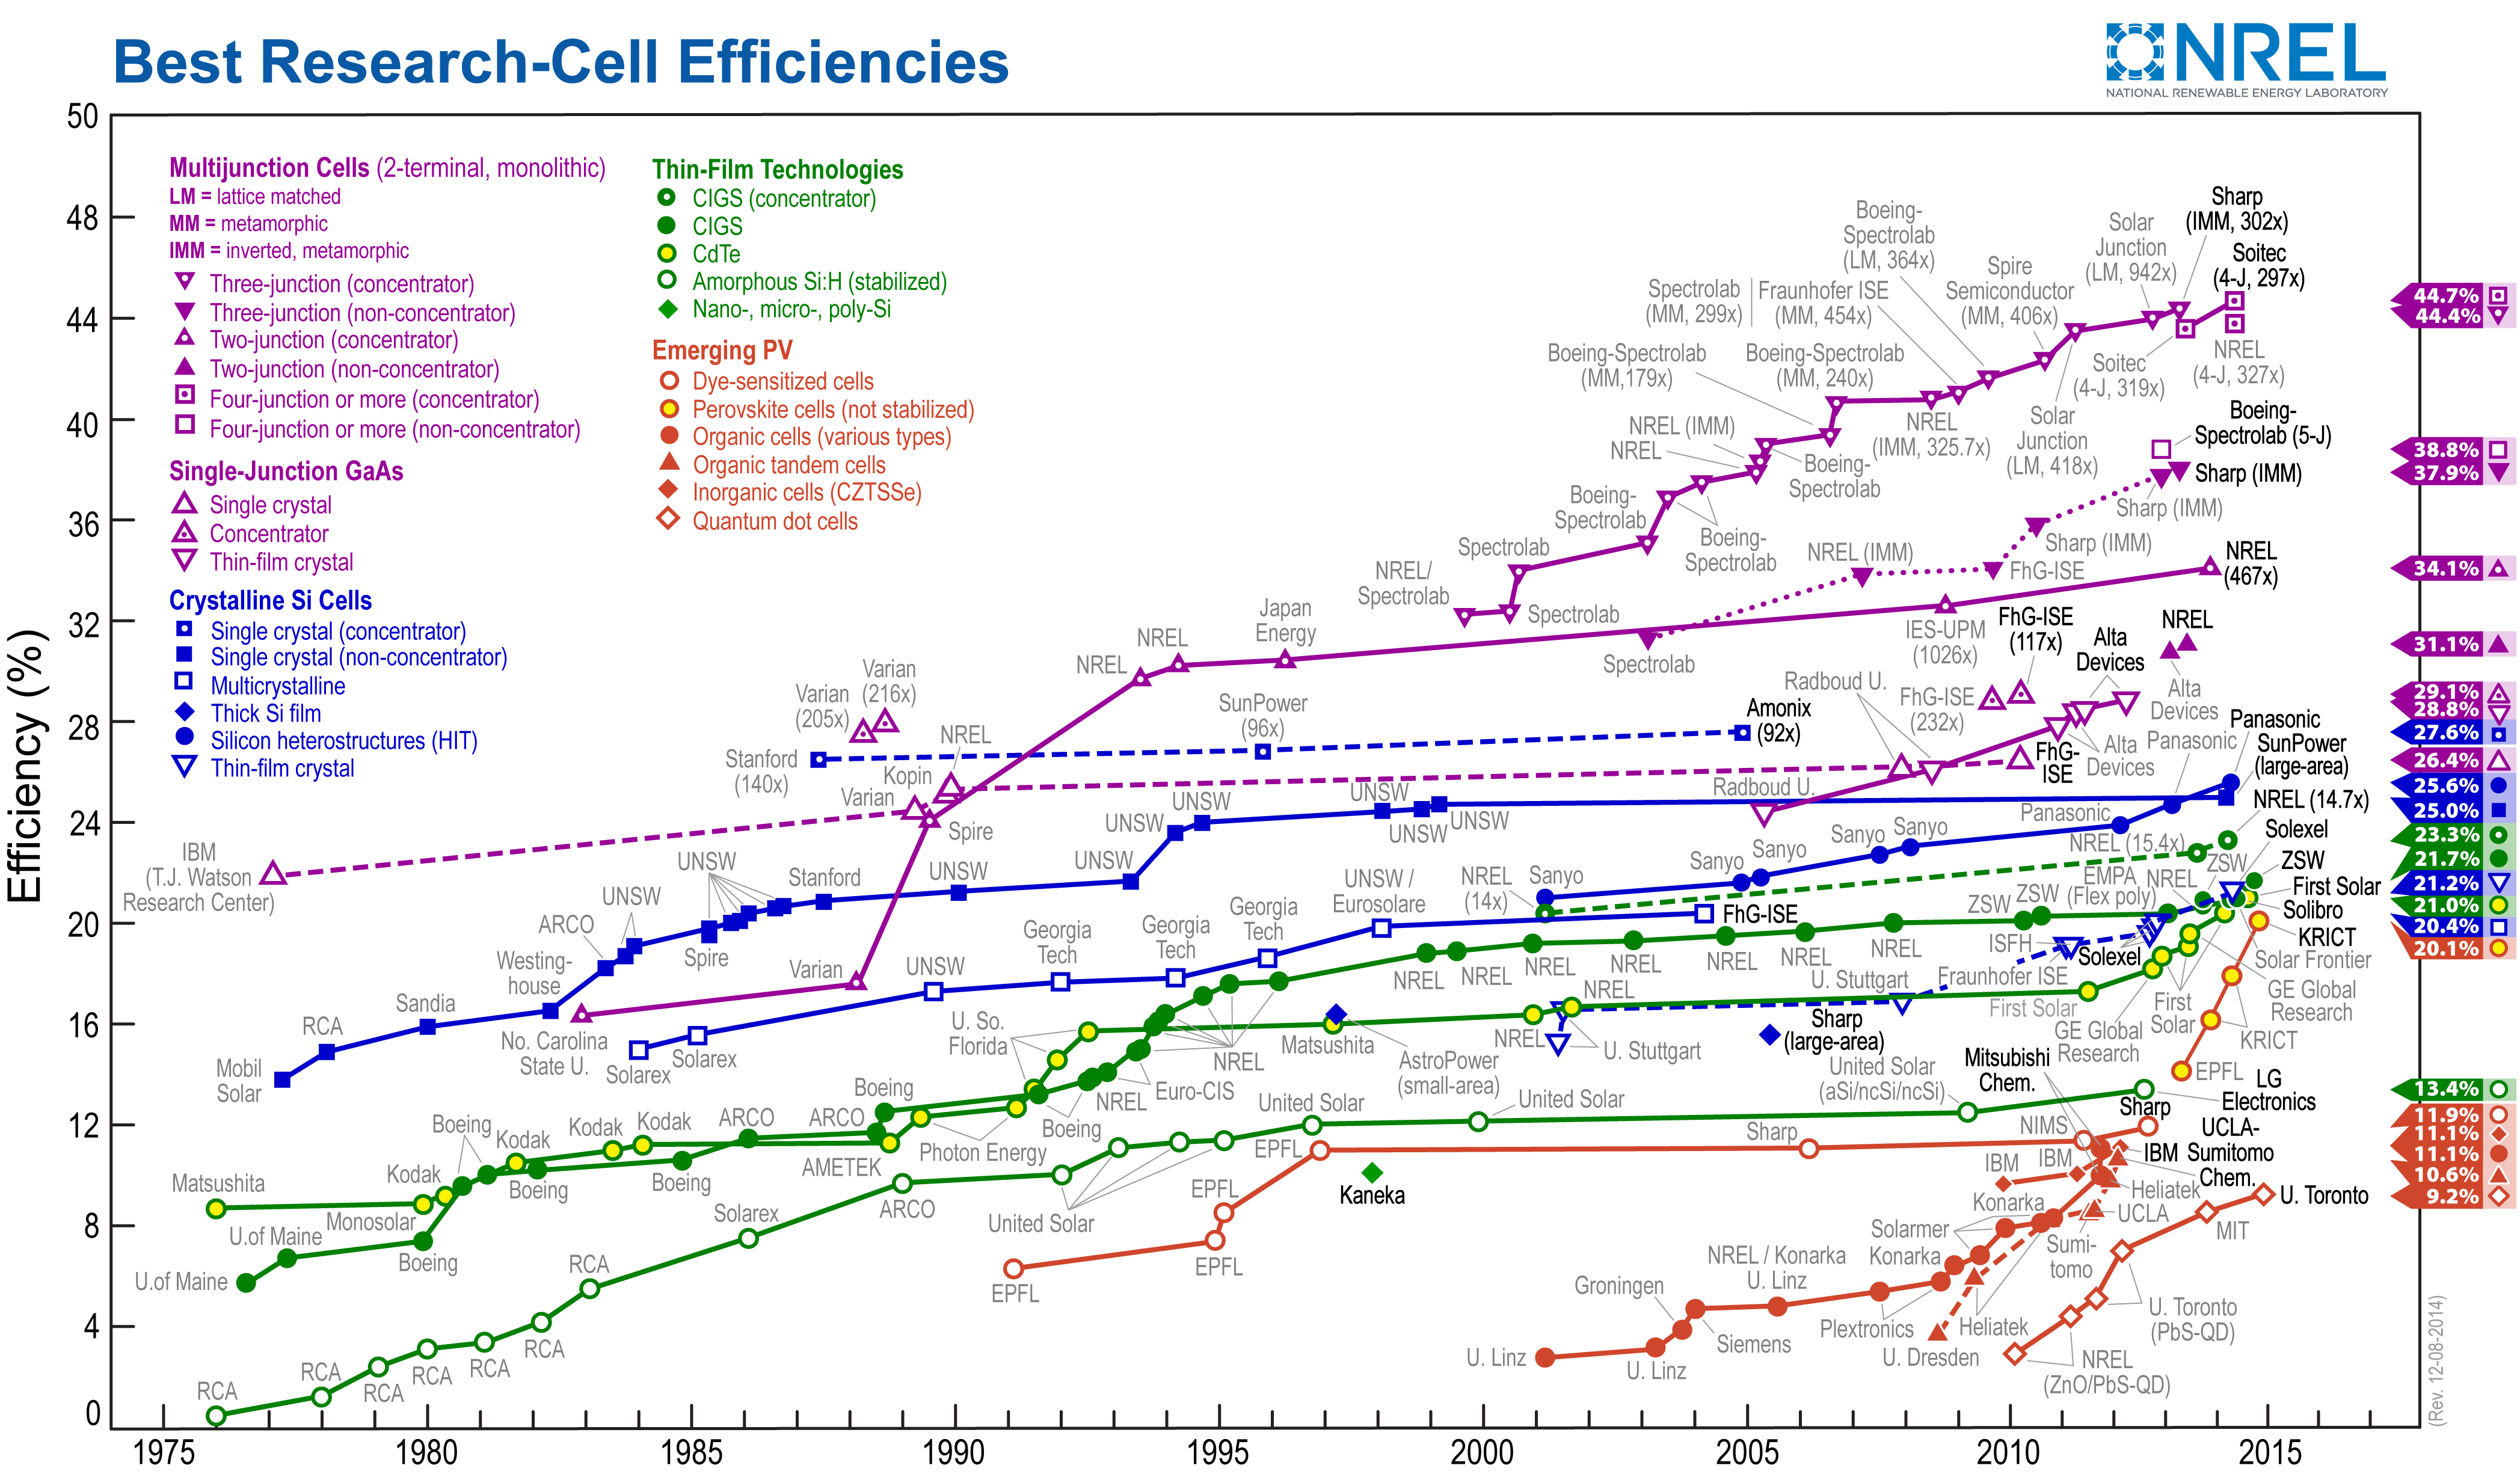 Nrel Demonstrates 45 7 Efficiency For Concentrator Solar Cell